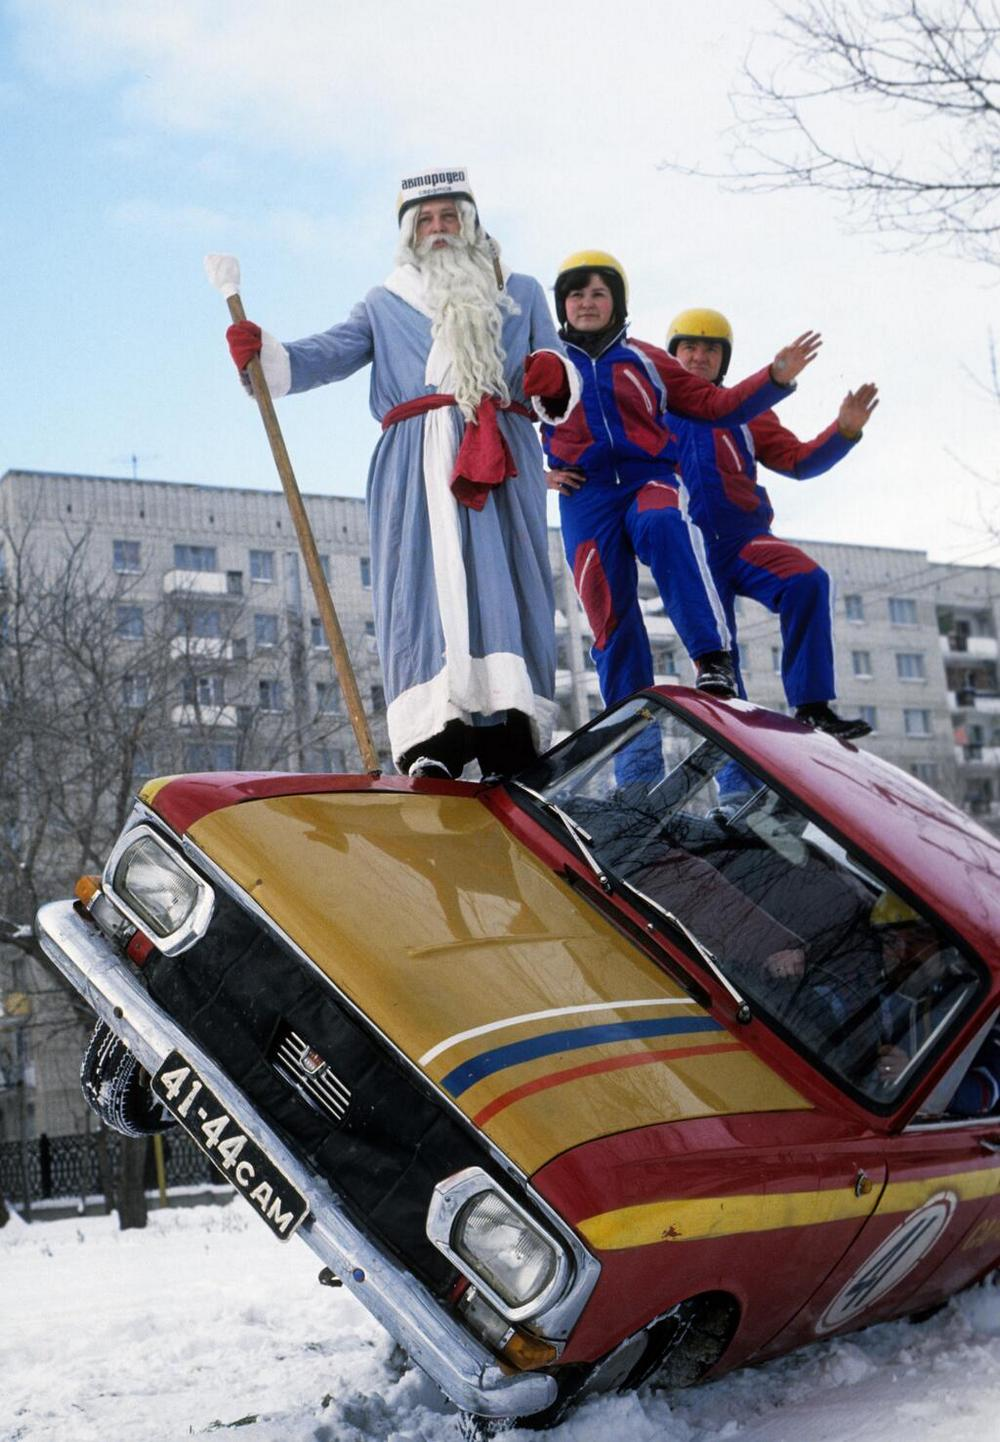 Ded Moroz: Photos of Slavic Santa Claus from the USSR - 2